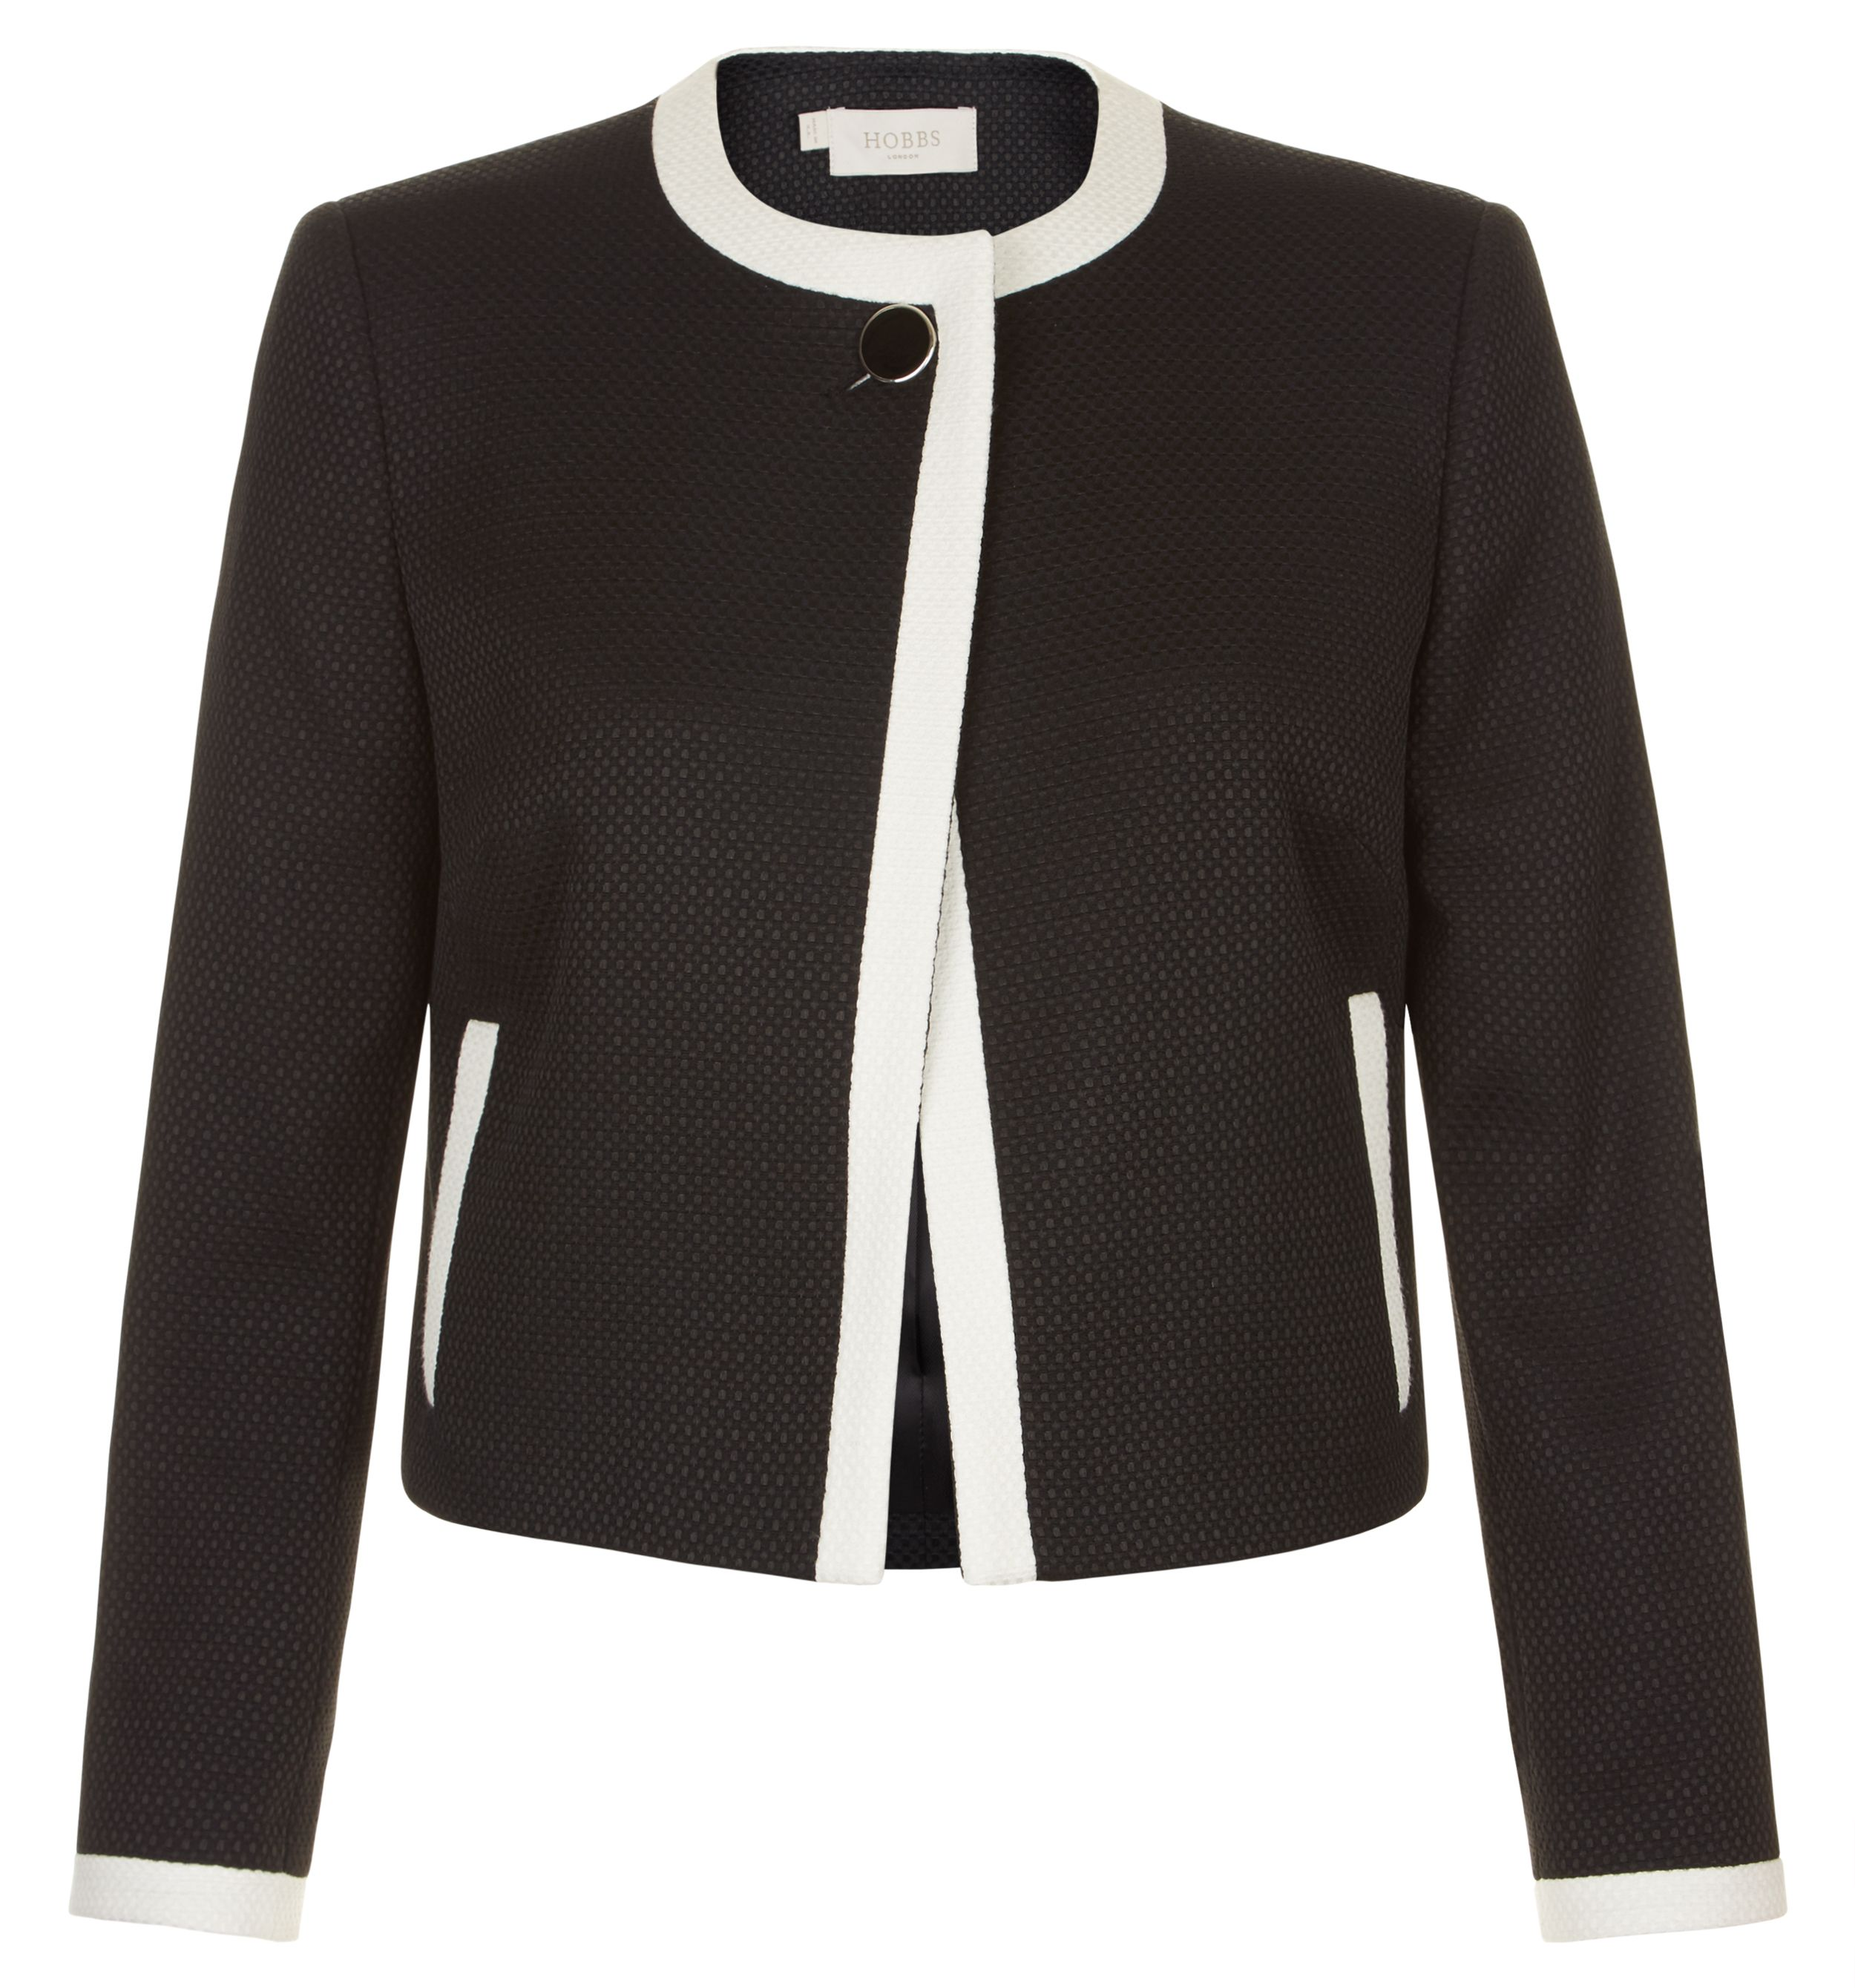 Hobbs Jacquie Jacket, Multi-Coloured